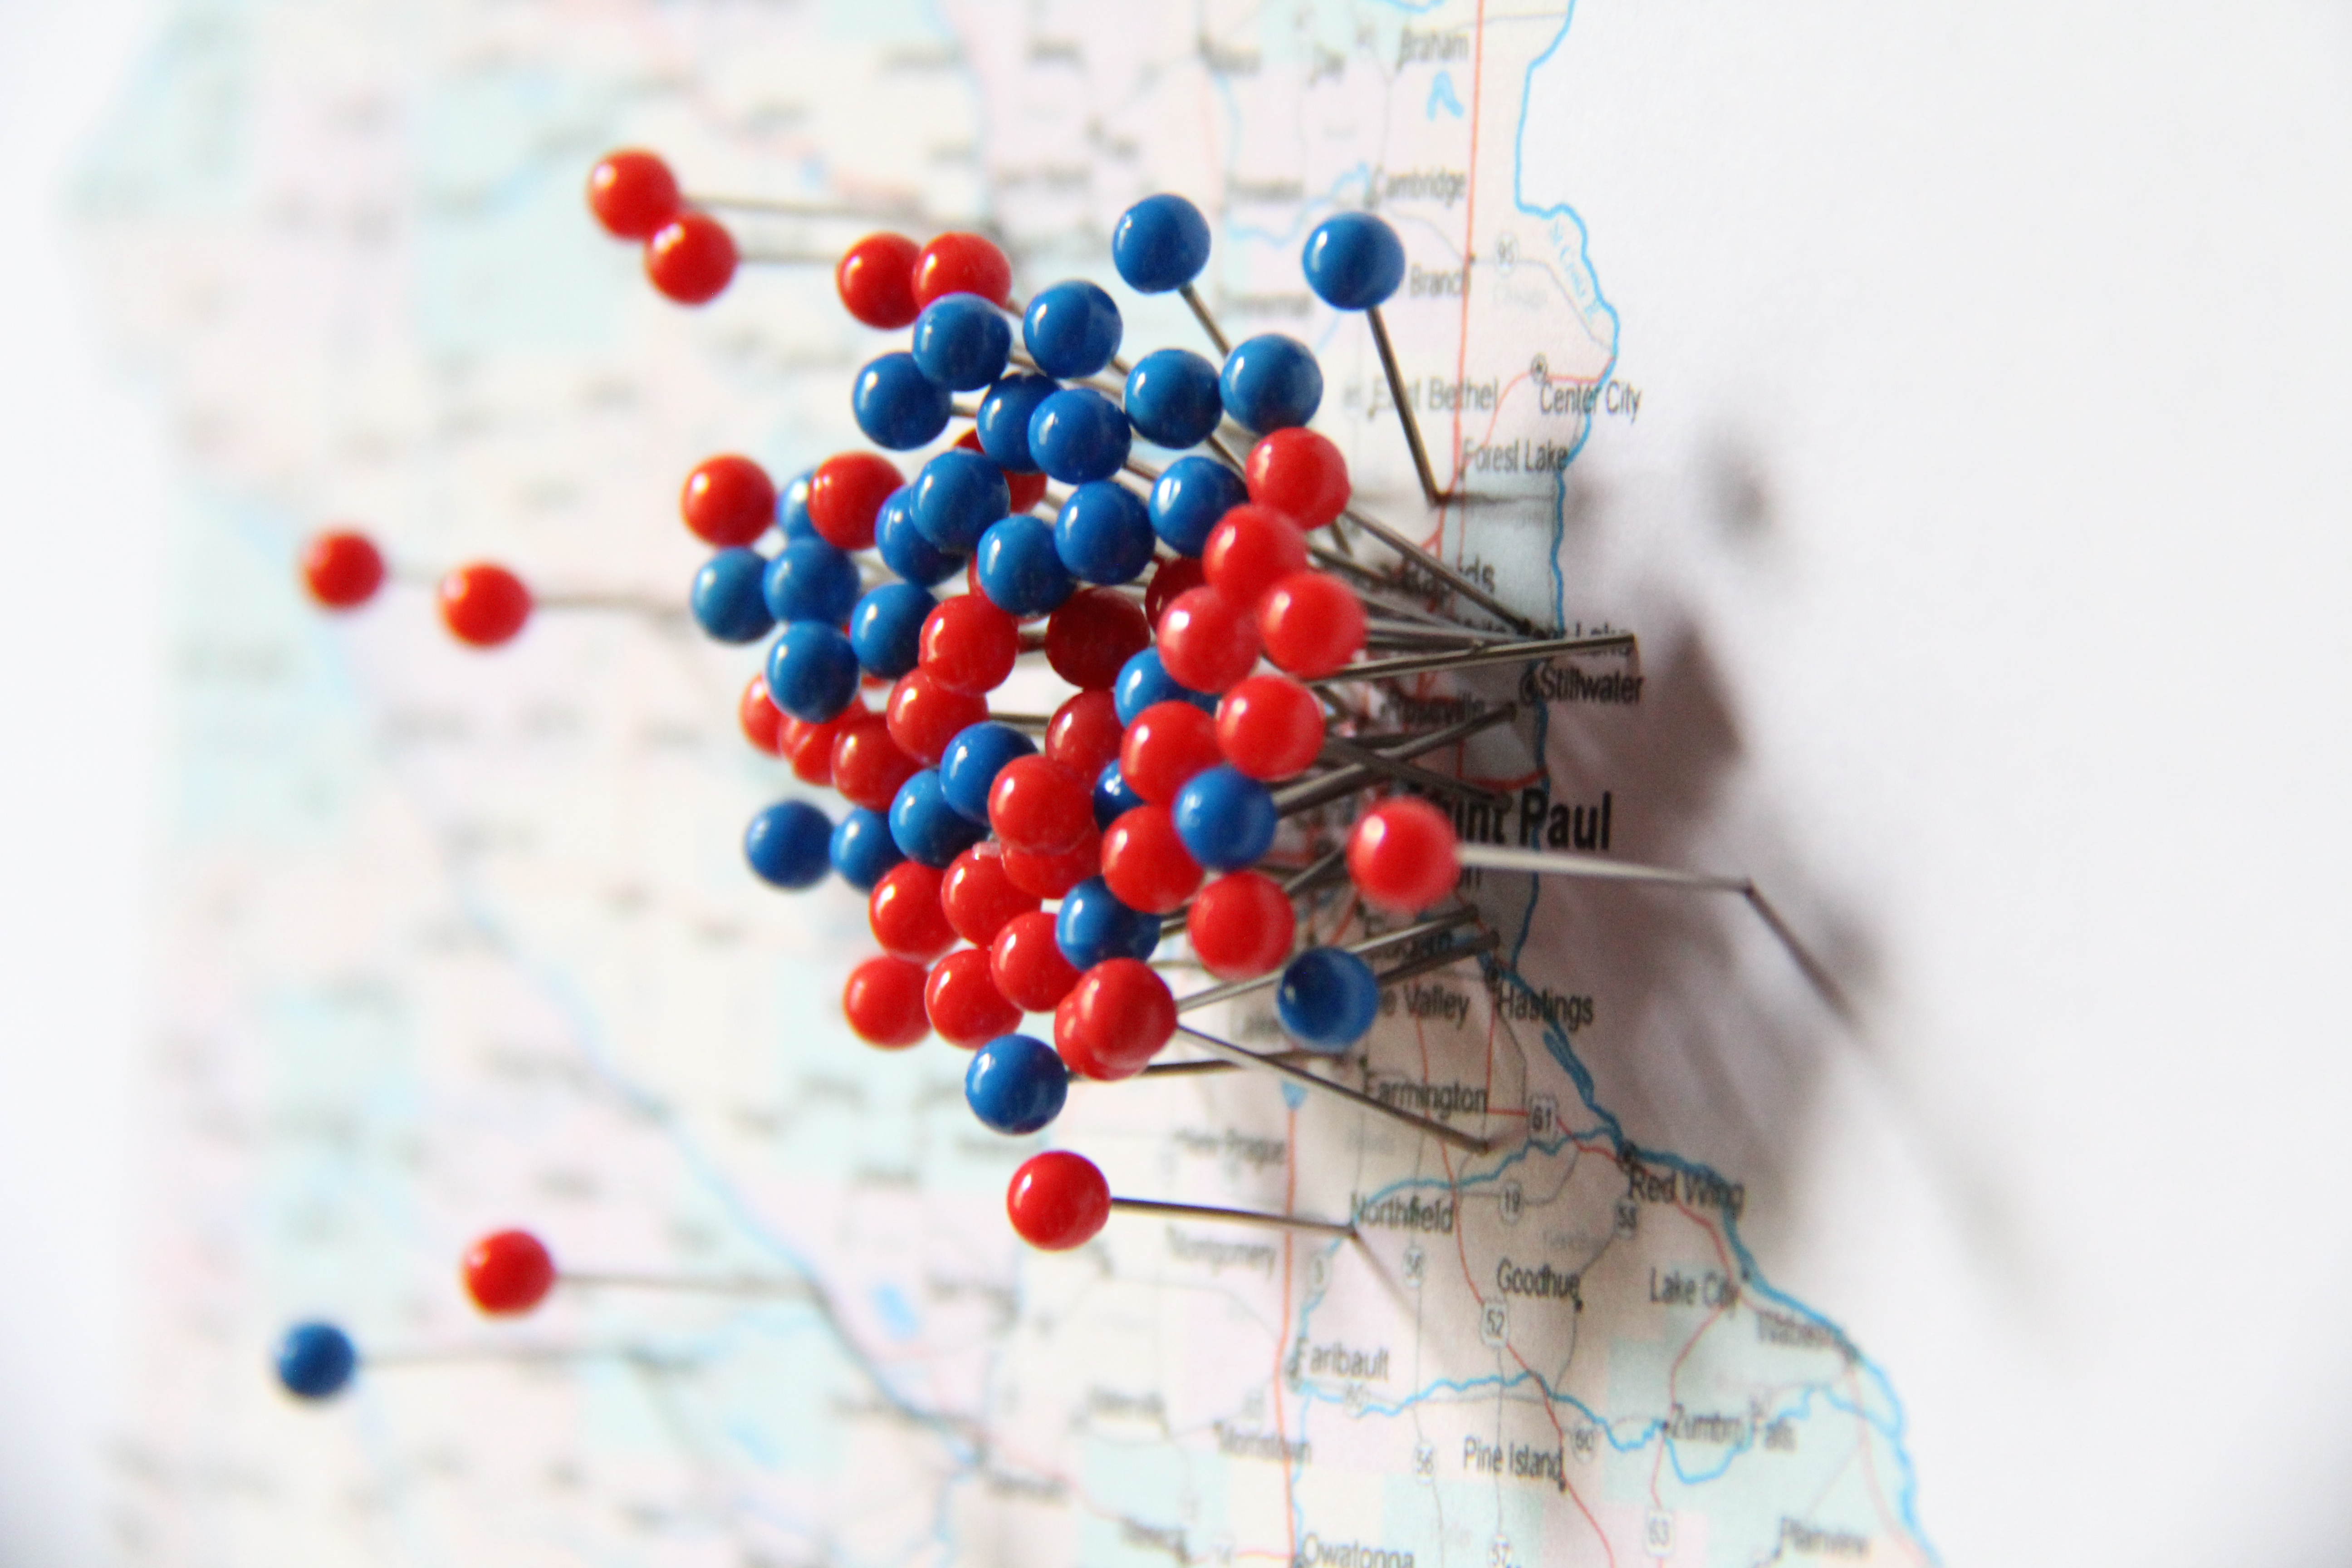 10 twin cities minnesota map red blue pins charlie mccarron